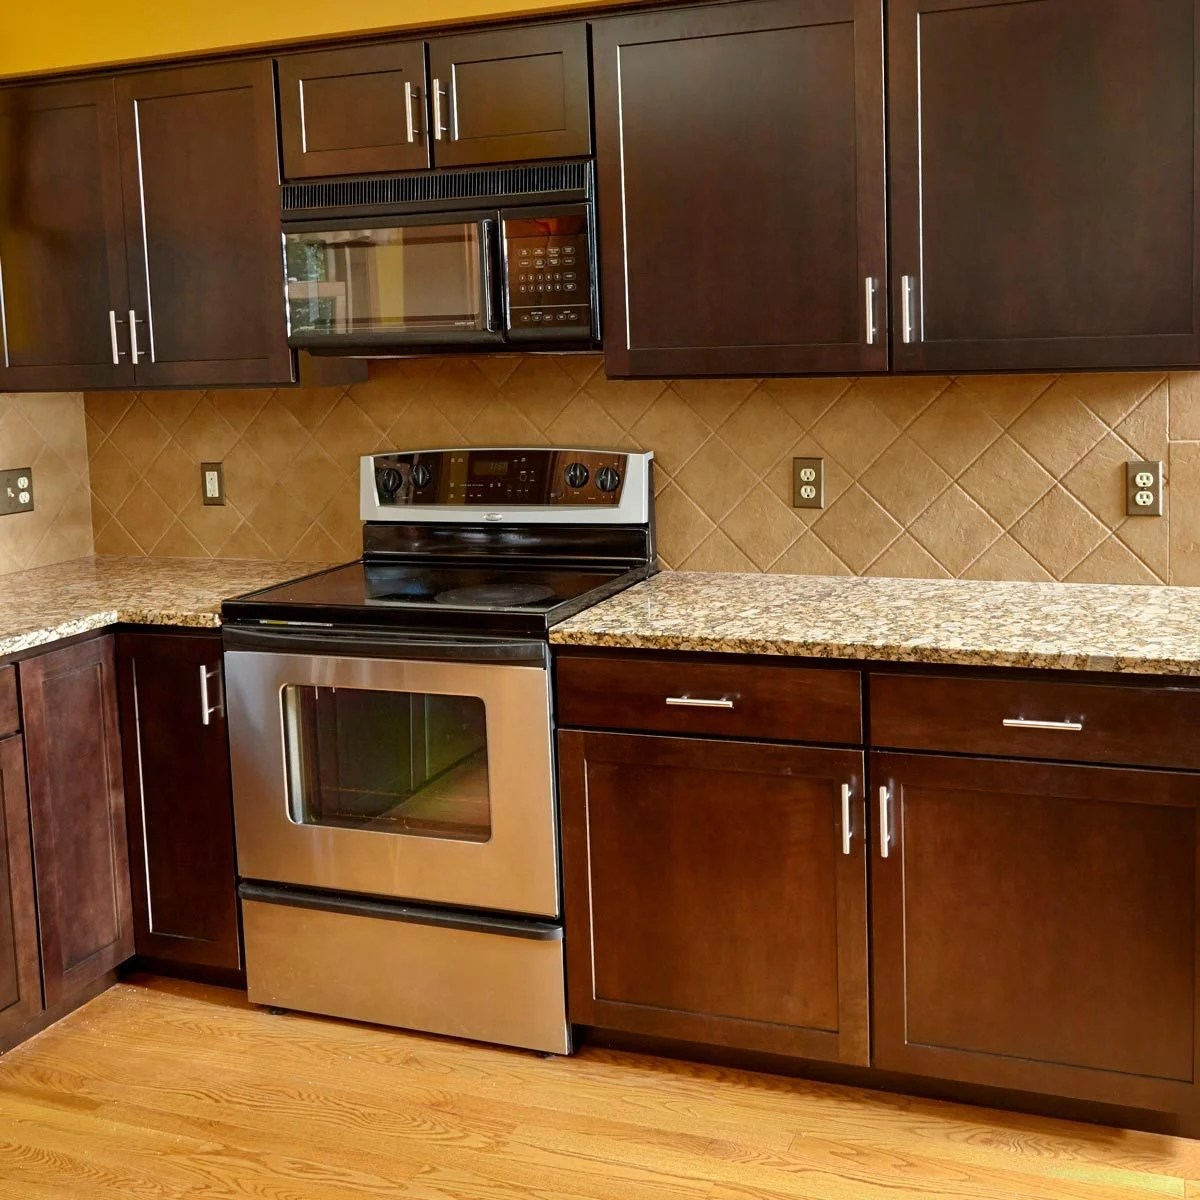 What Is The Cost To Reface Kitchen Cabinets: Nagpurentrepreneurs